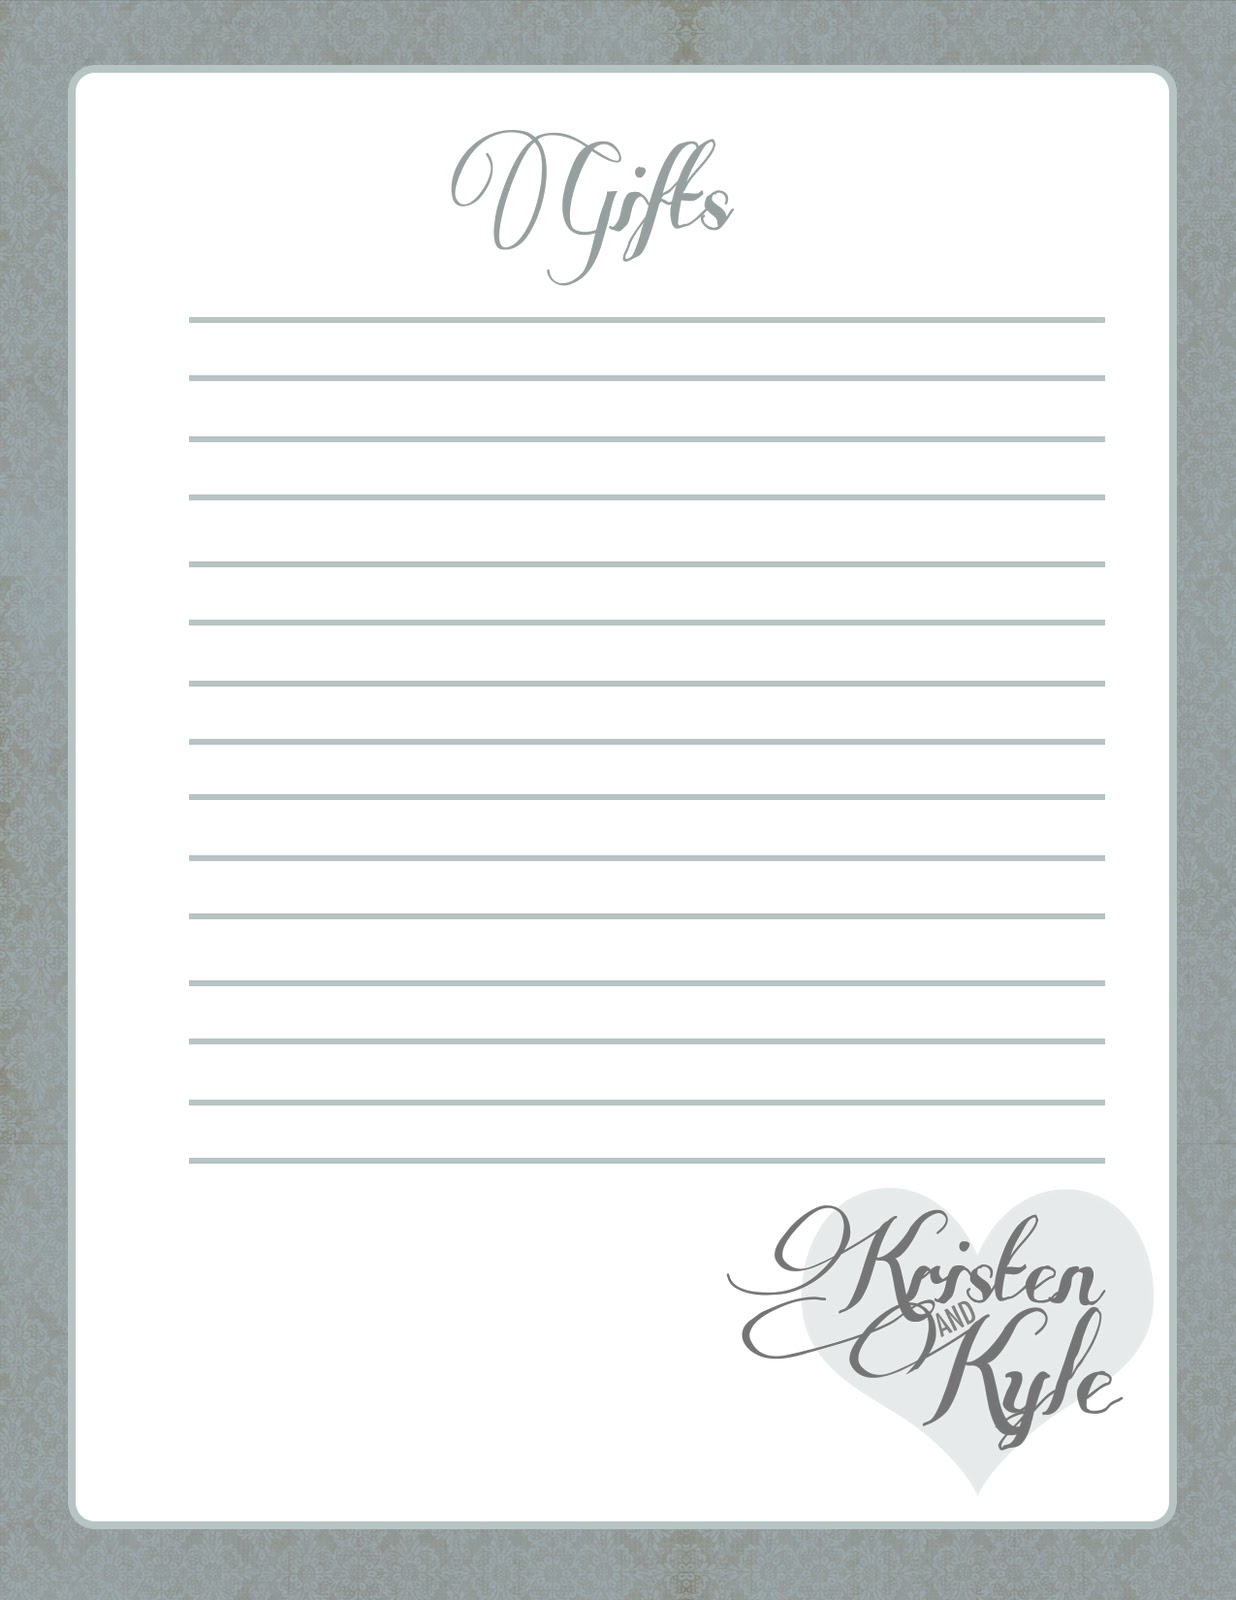 Template For Wedding Gift List : Bridal+Shower+Gift+List+Template Baby Shower Gift List Event...